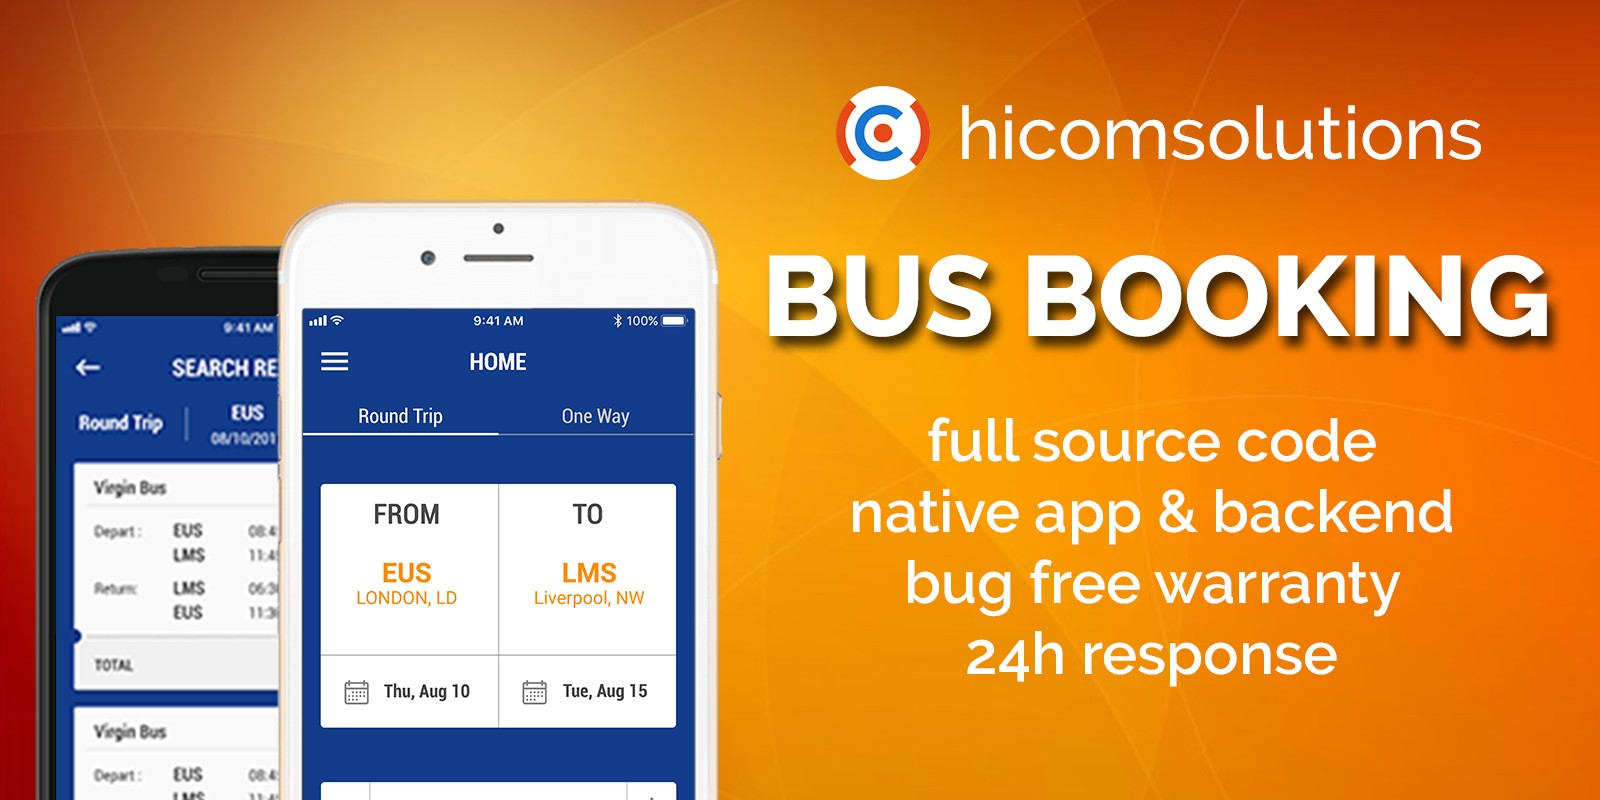 Bus Ticket Booking - iOS Source Code